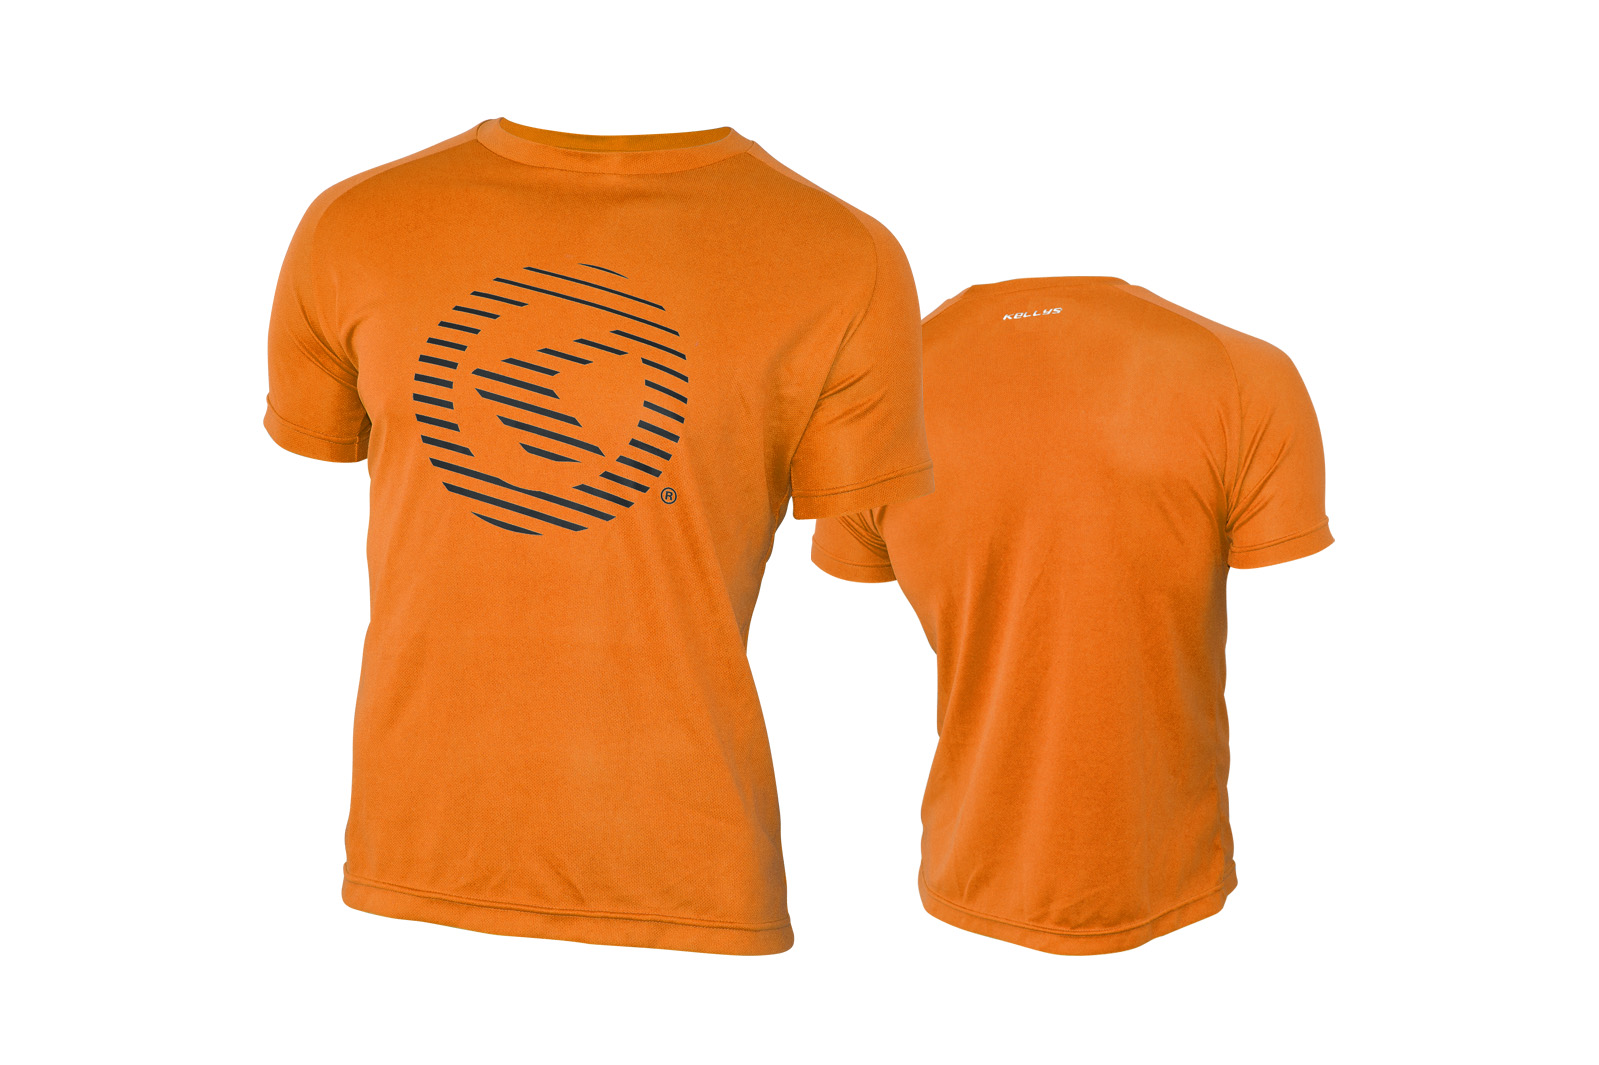 T-Shirt KELLYS ACTIVE orange - S - Mega Handelsgesellschaft